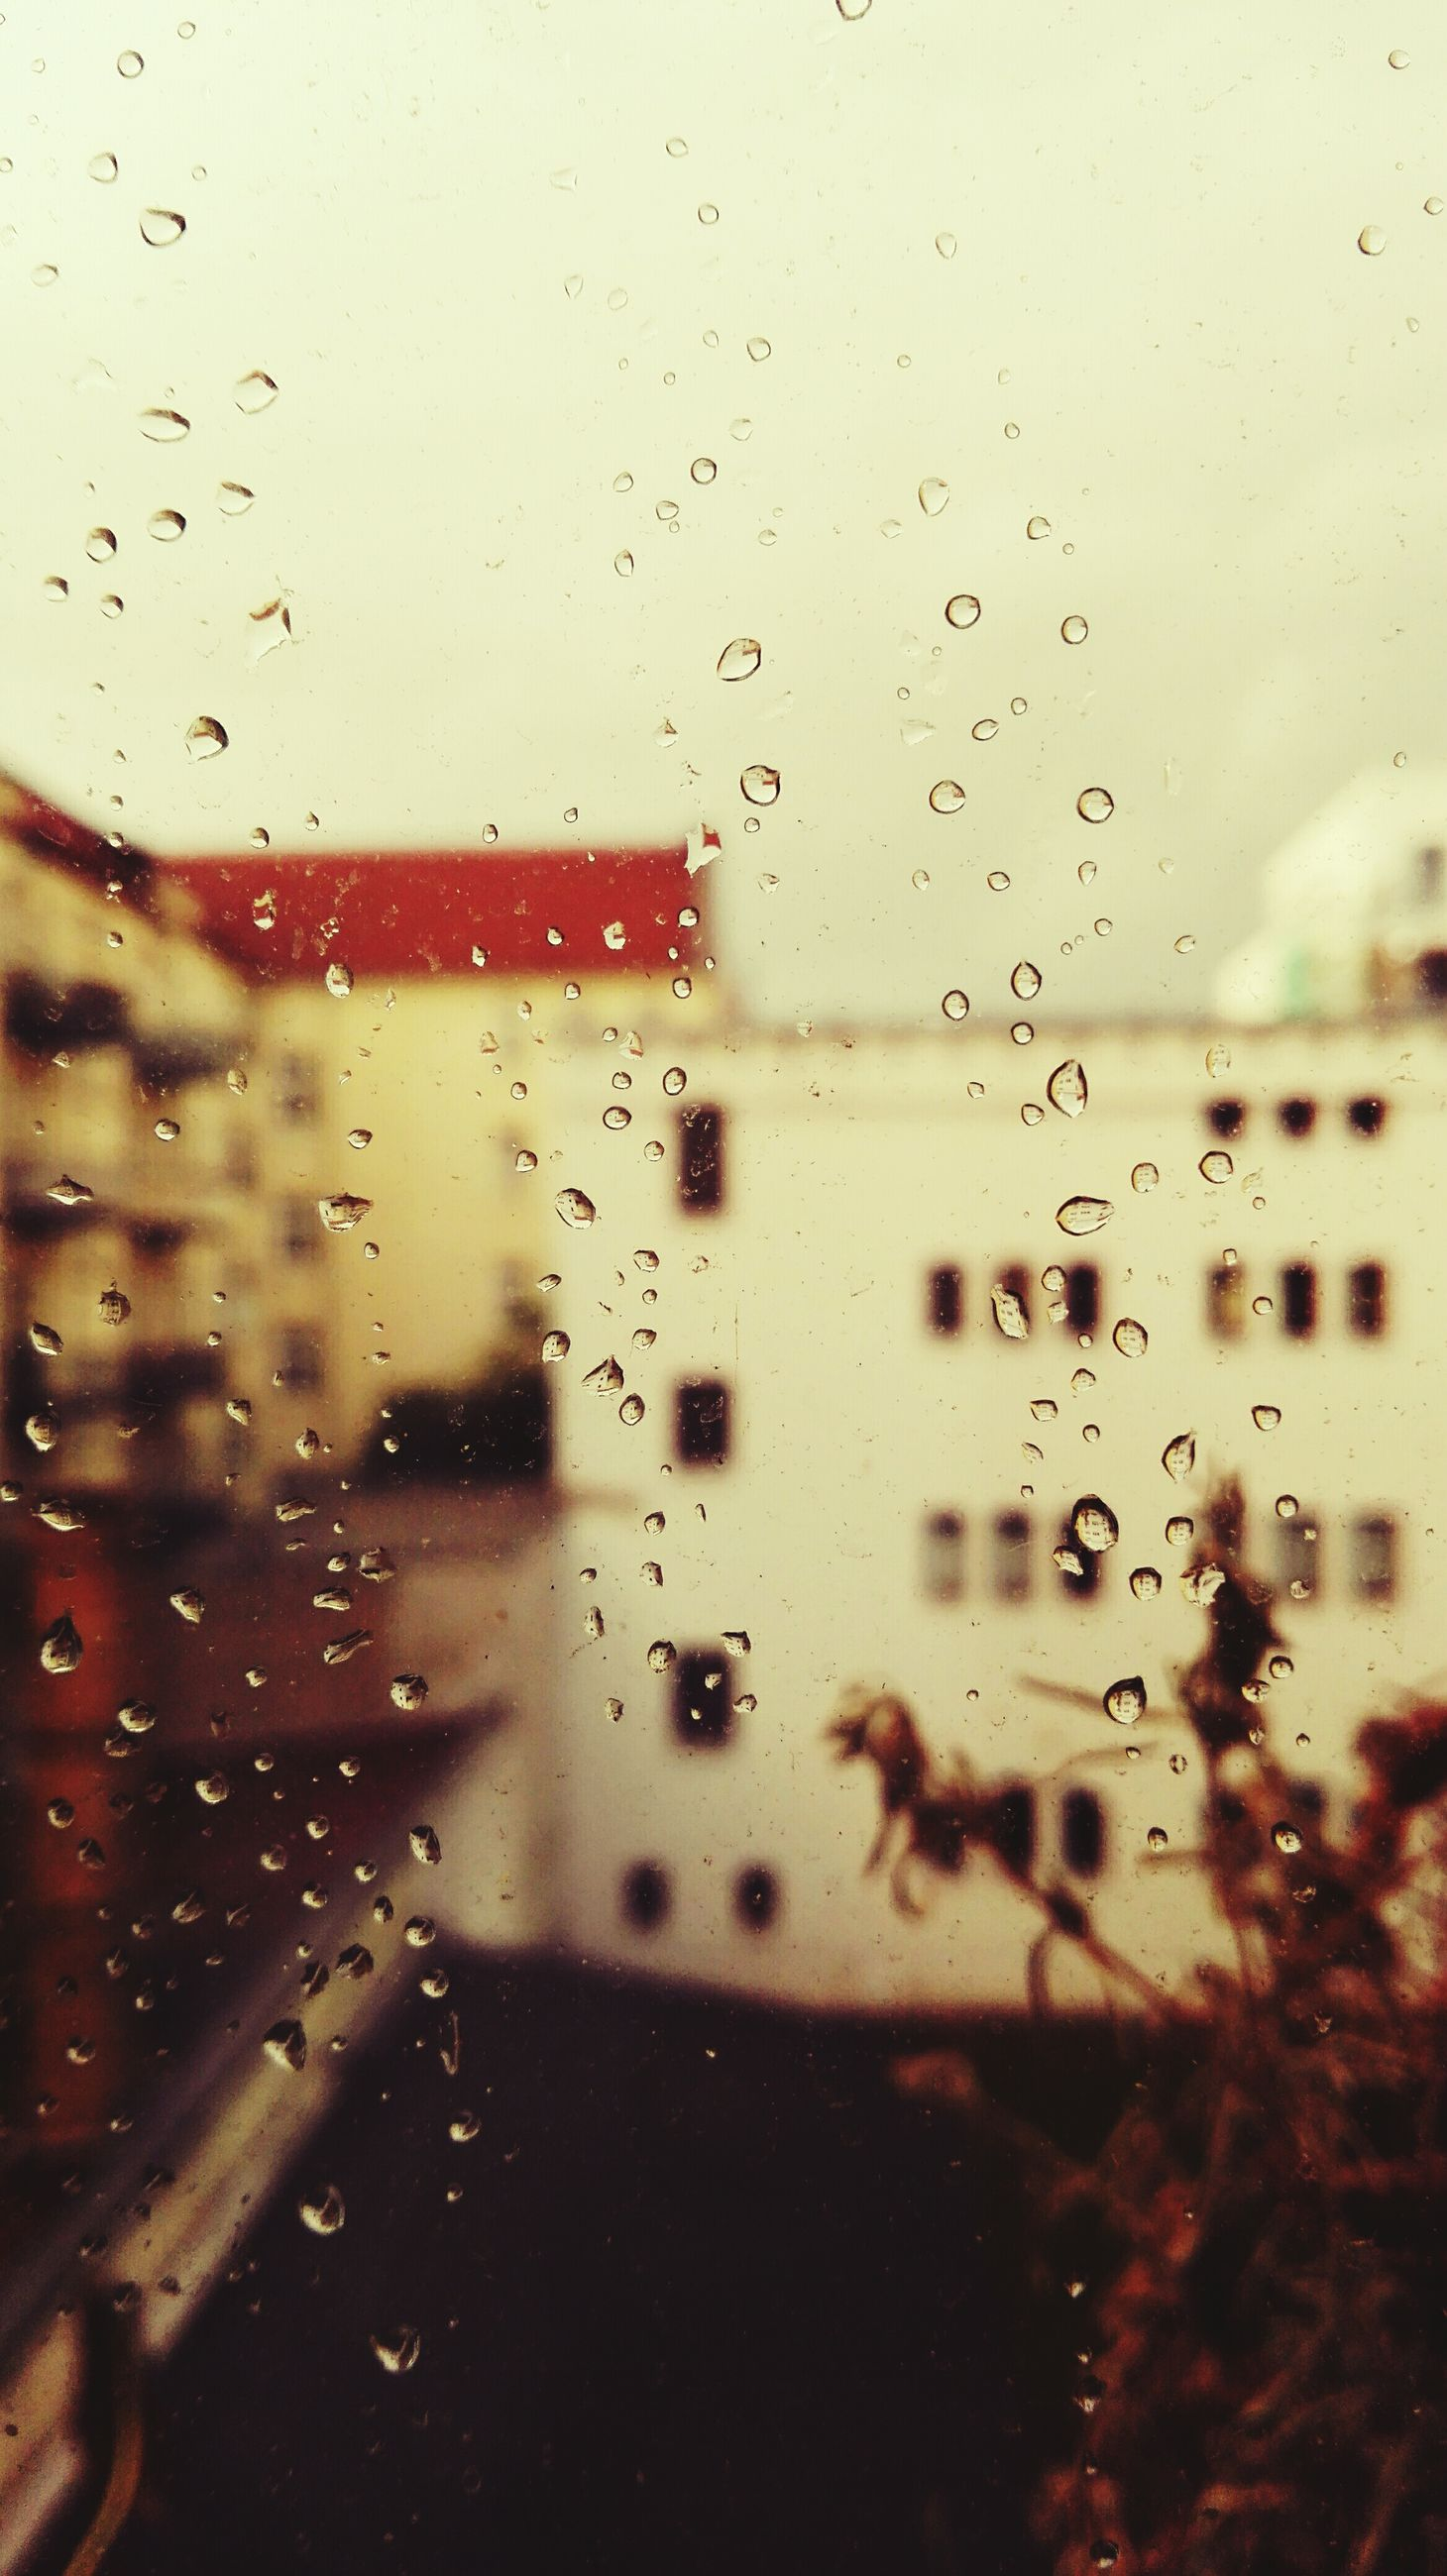 drop, wet, rain, window, transparent, water, raindrop, glass - material, weather, indoors, transportation, focus on foreground, monsoon, season, car, architecture, built structure, mode of transport, building exterior, sky